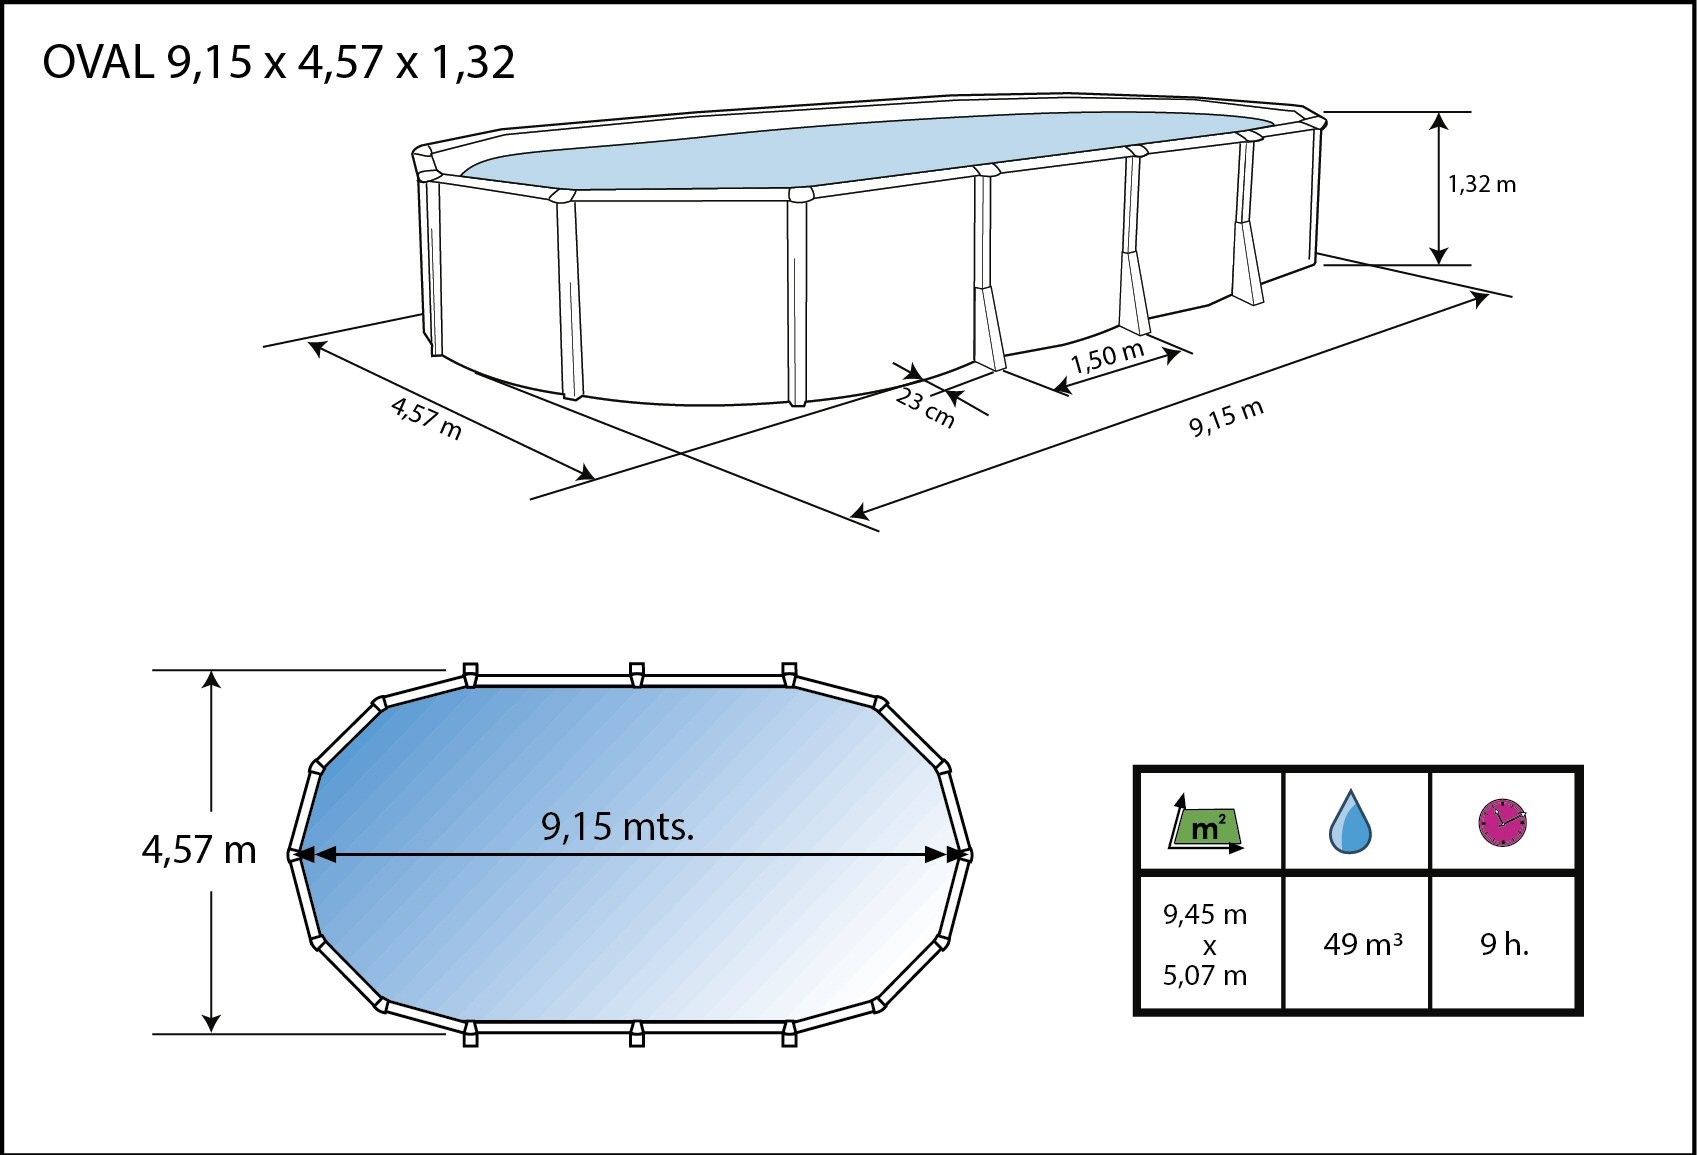 Buttress Free Oval Pool - 7.31 x 3.66m x 1.32m